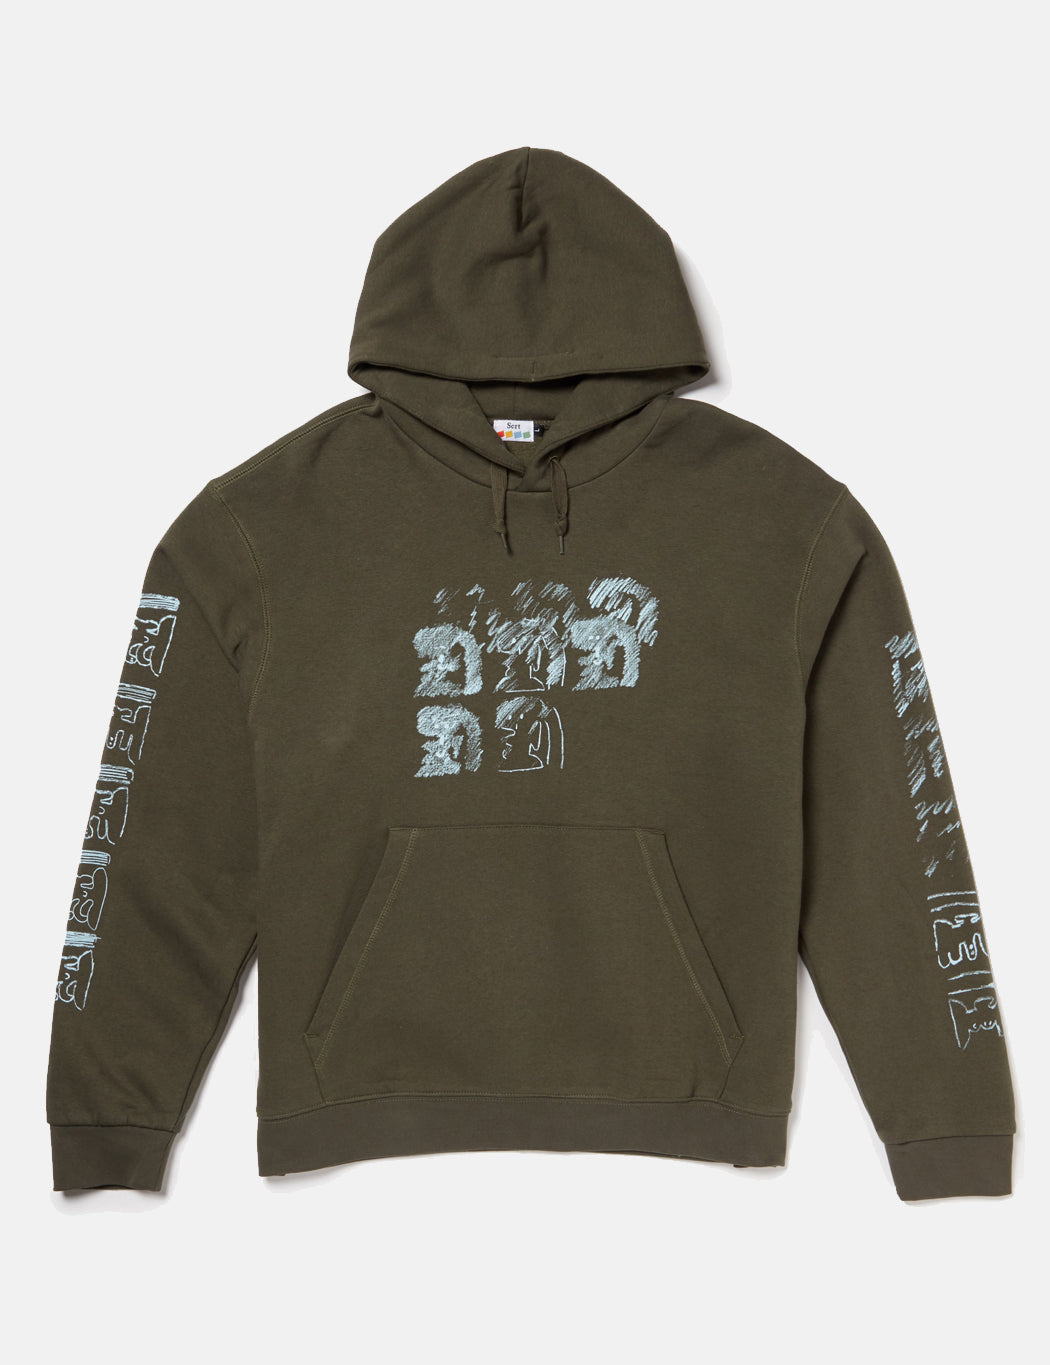 8697eff6 SCRT Ritual Hooded Sweatshirt - Olive Green | URBAN EXCESS.